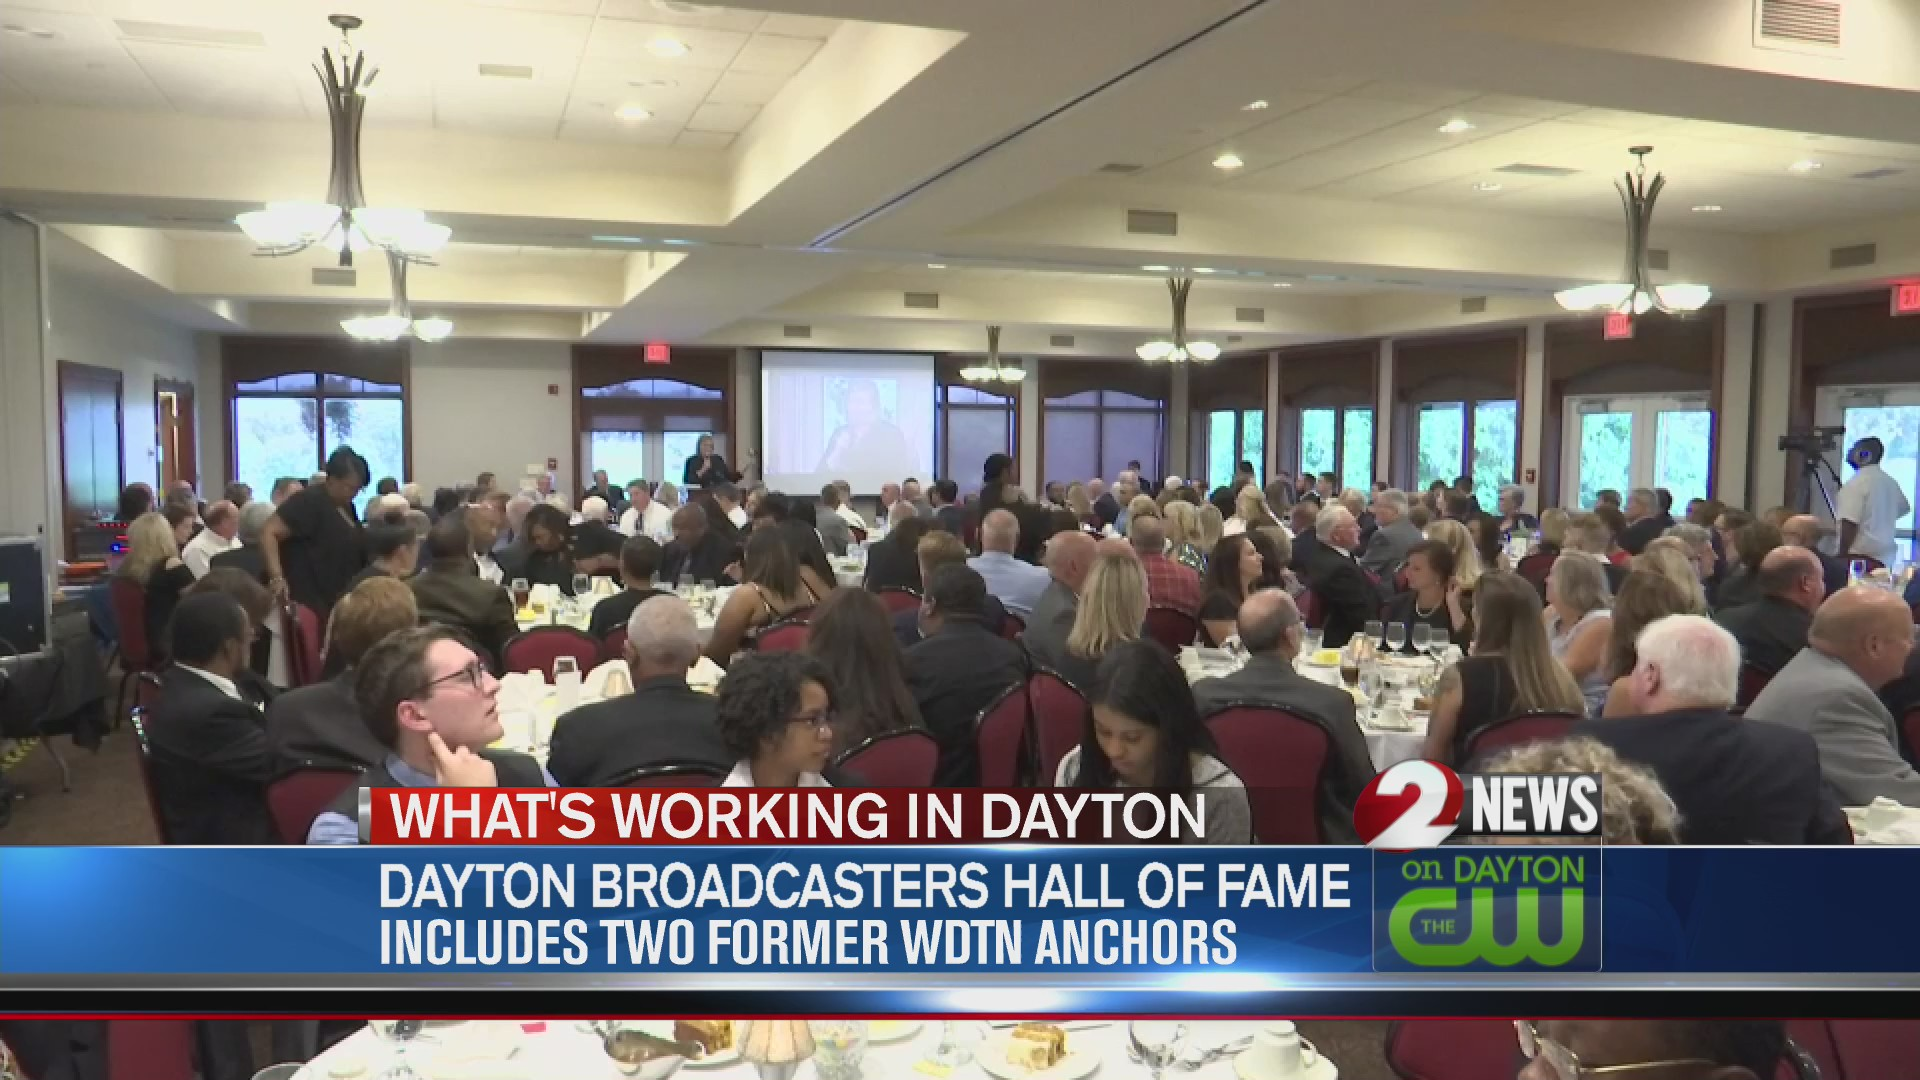 Dayton broadcasters hall of fame